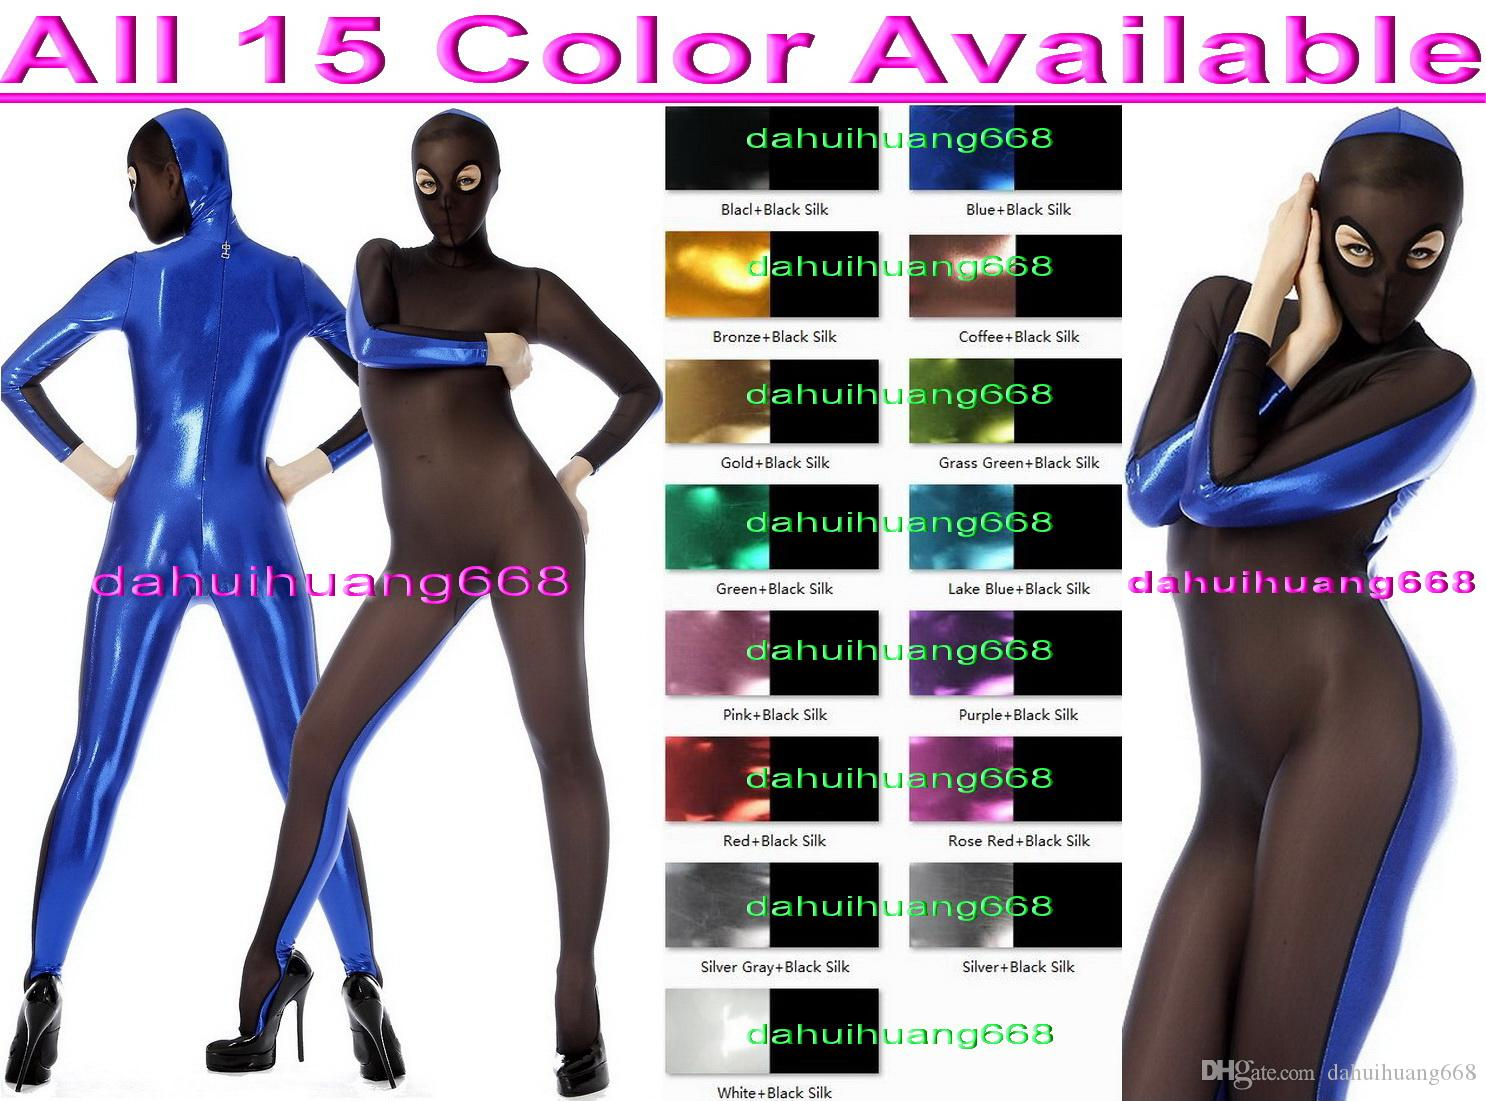 Sexy 15 Color Shiny Lycra Metallic and Spandex Silk Suit Catsuit Costumes Unisex Full Bodysuit Cosplay Costumes Outfit With Open Eyes DH064